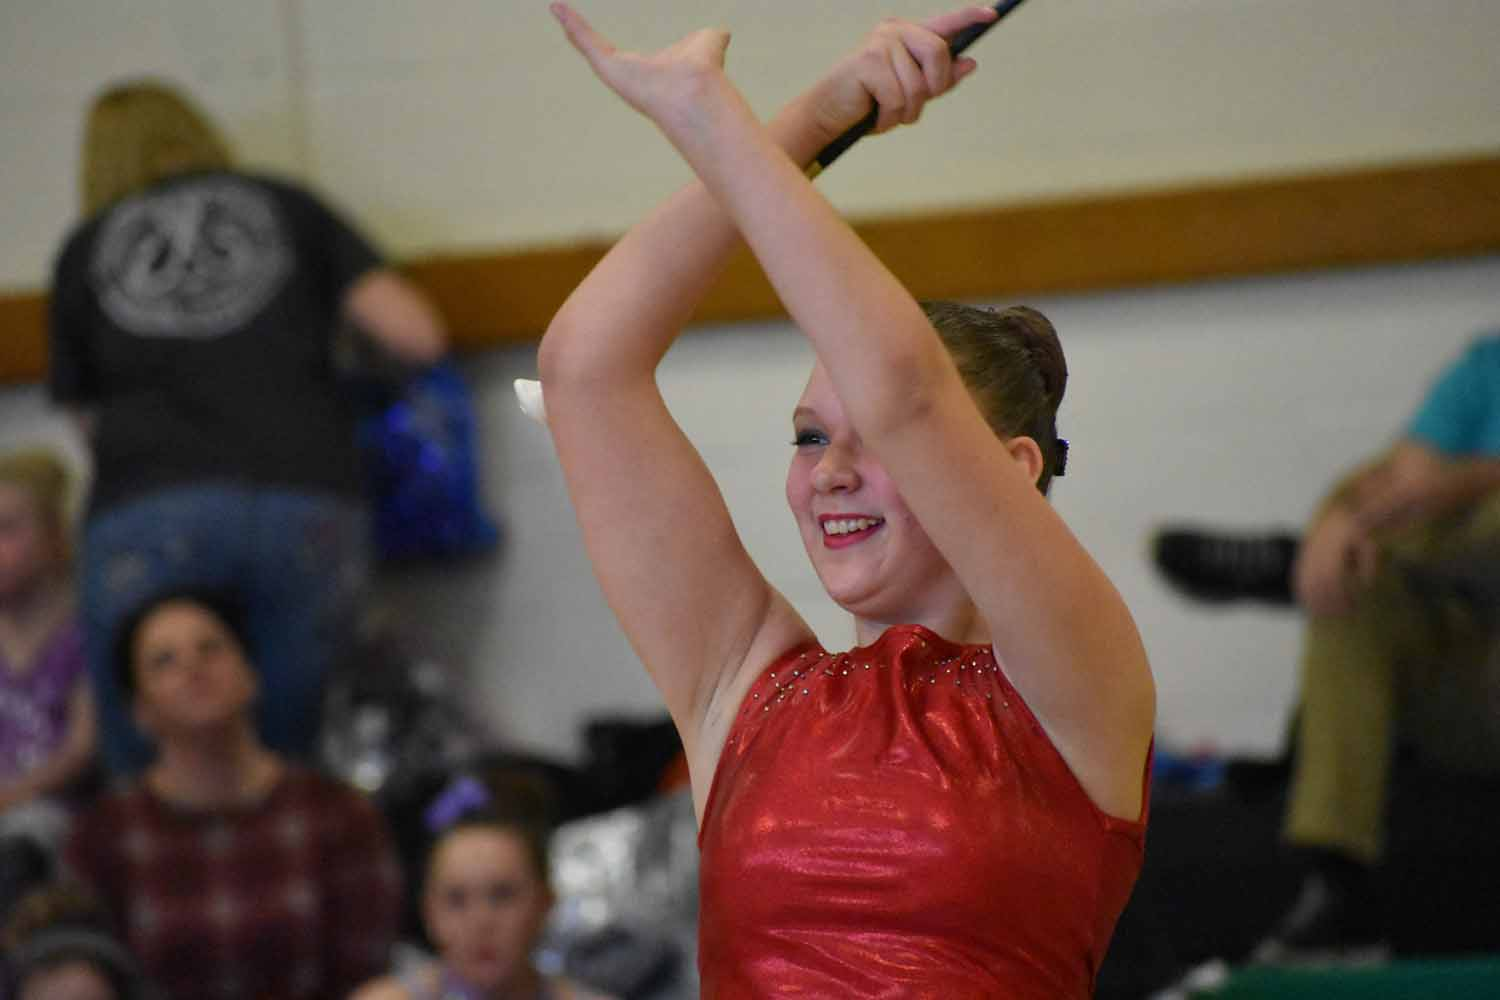 All smiles! Eighth grader Danielle Bardelang competes with her teammates in Portage, PA. She enjoyed the competition and can't wait until the next one.